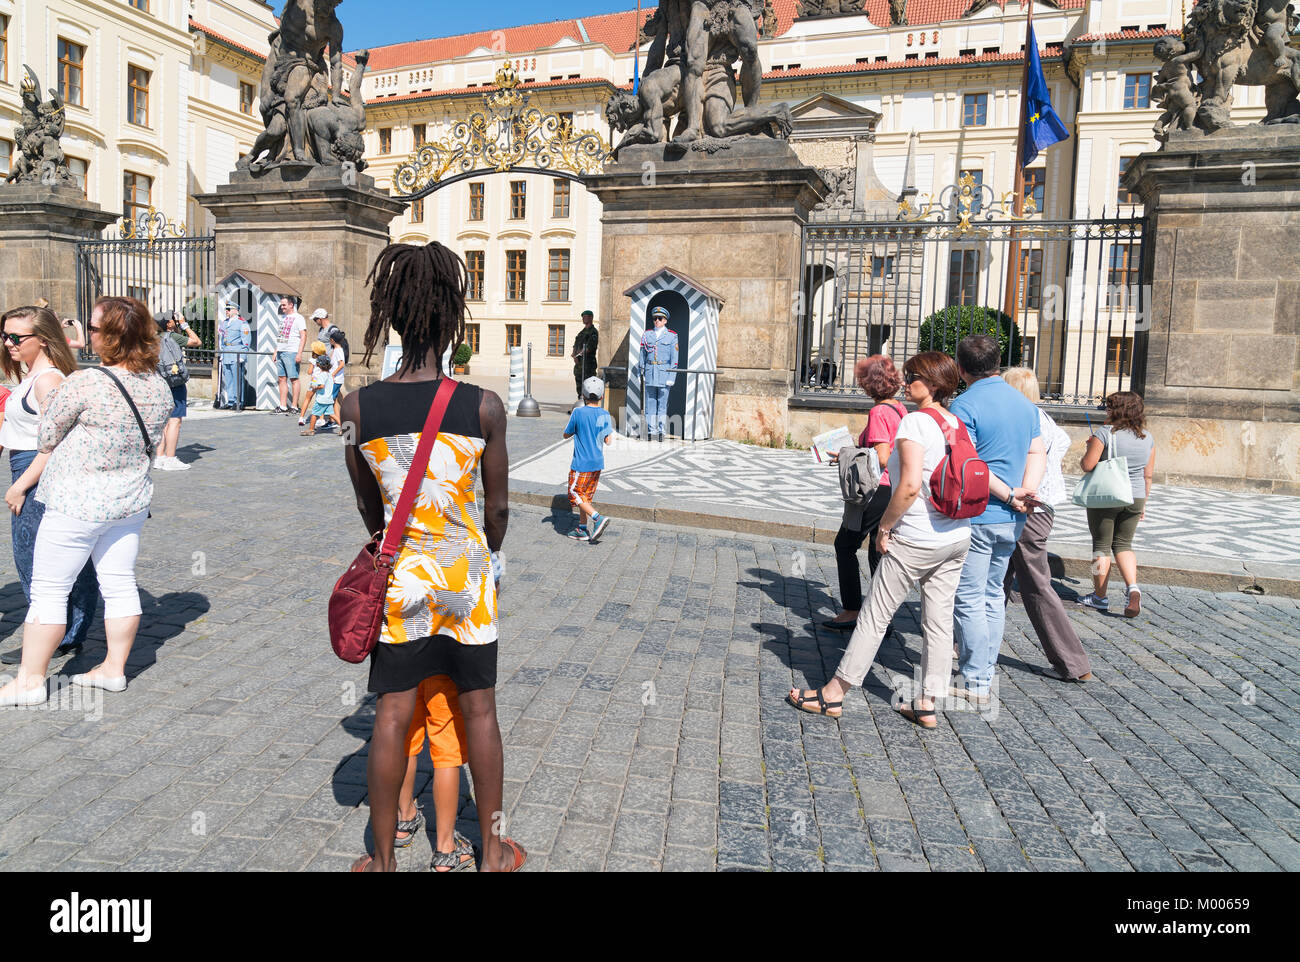 PRAGUE - AUGUST 29: Black woman with dreadlock hair stands  while other tourists walk around looking at Prague Castle - Stock Image